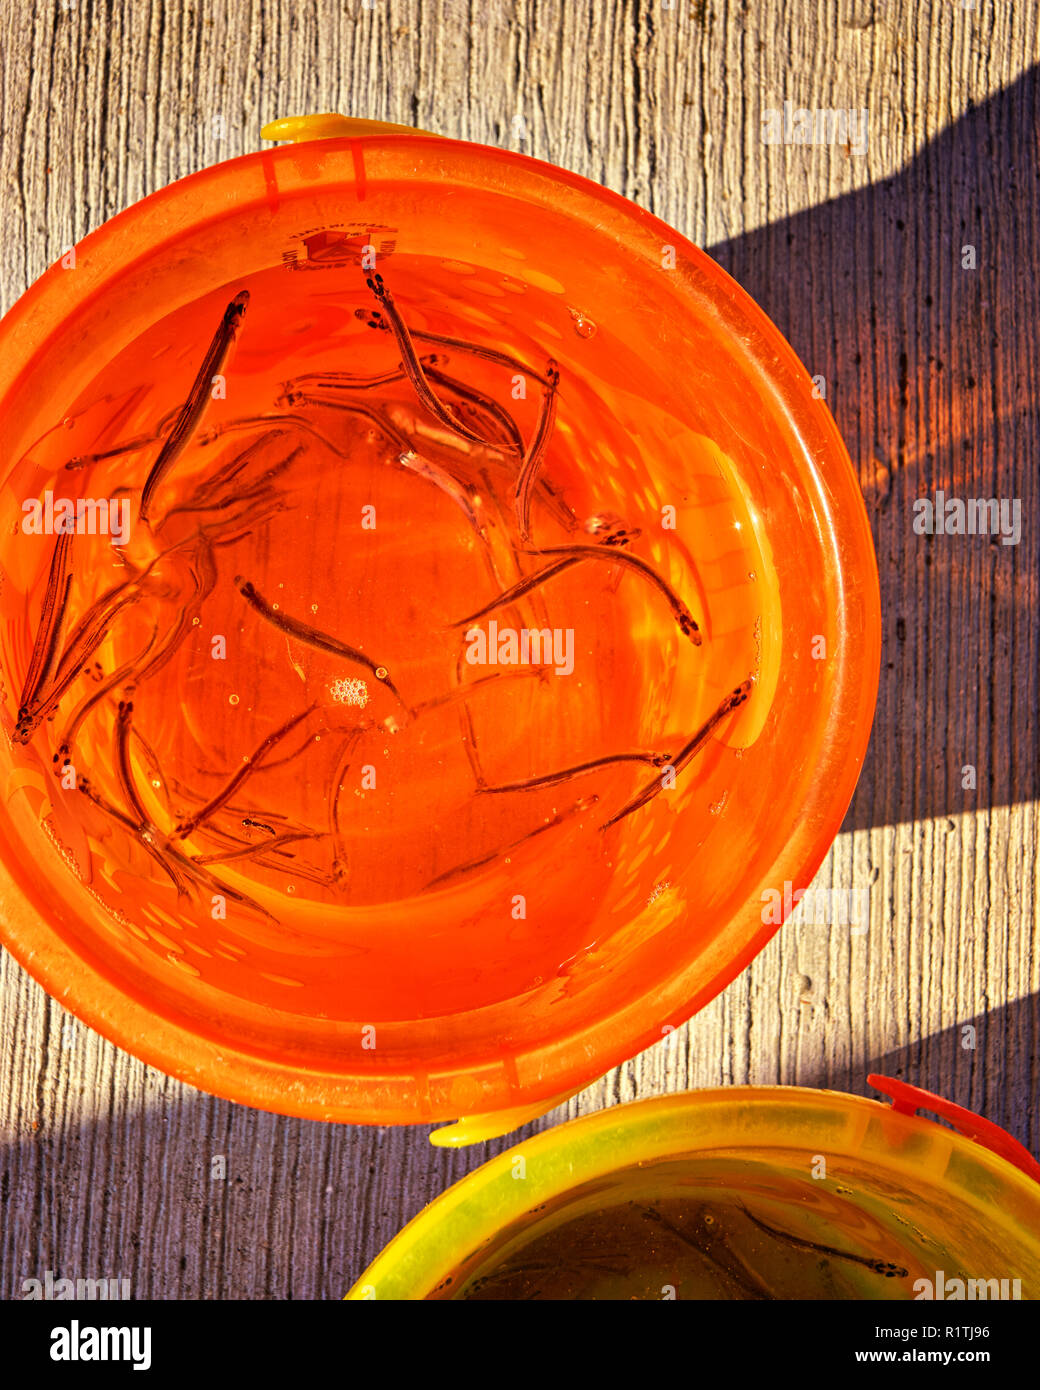 Orange bucket of fish a boy has caught with a net. - Stock Image